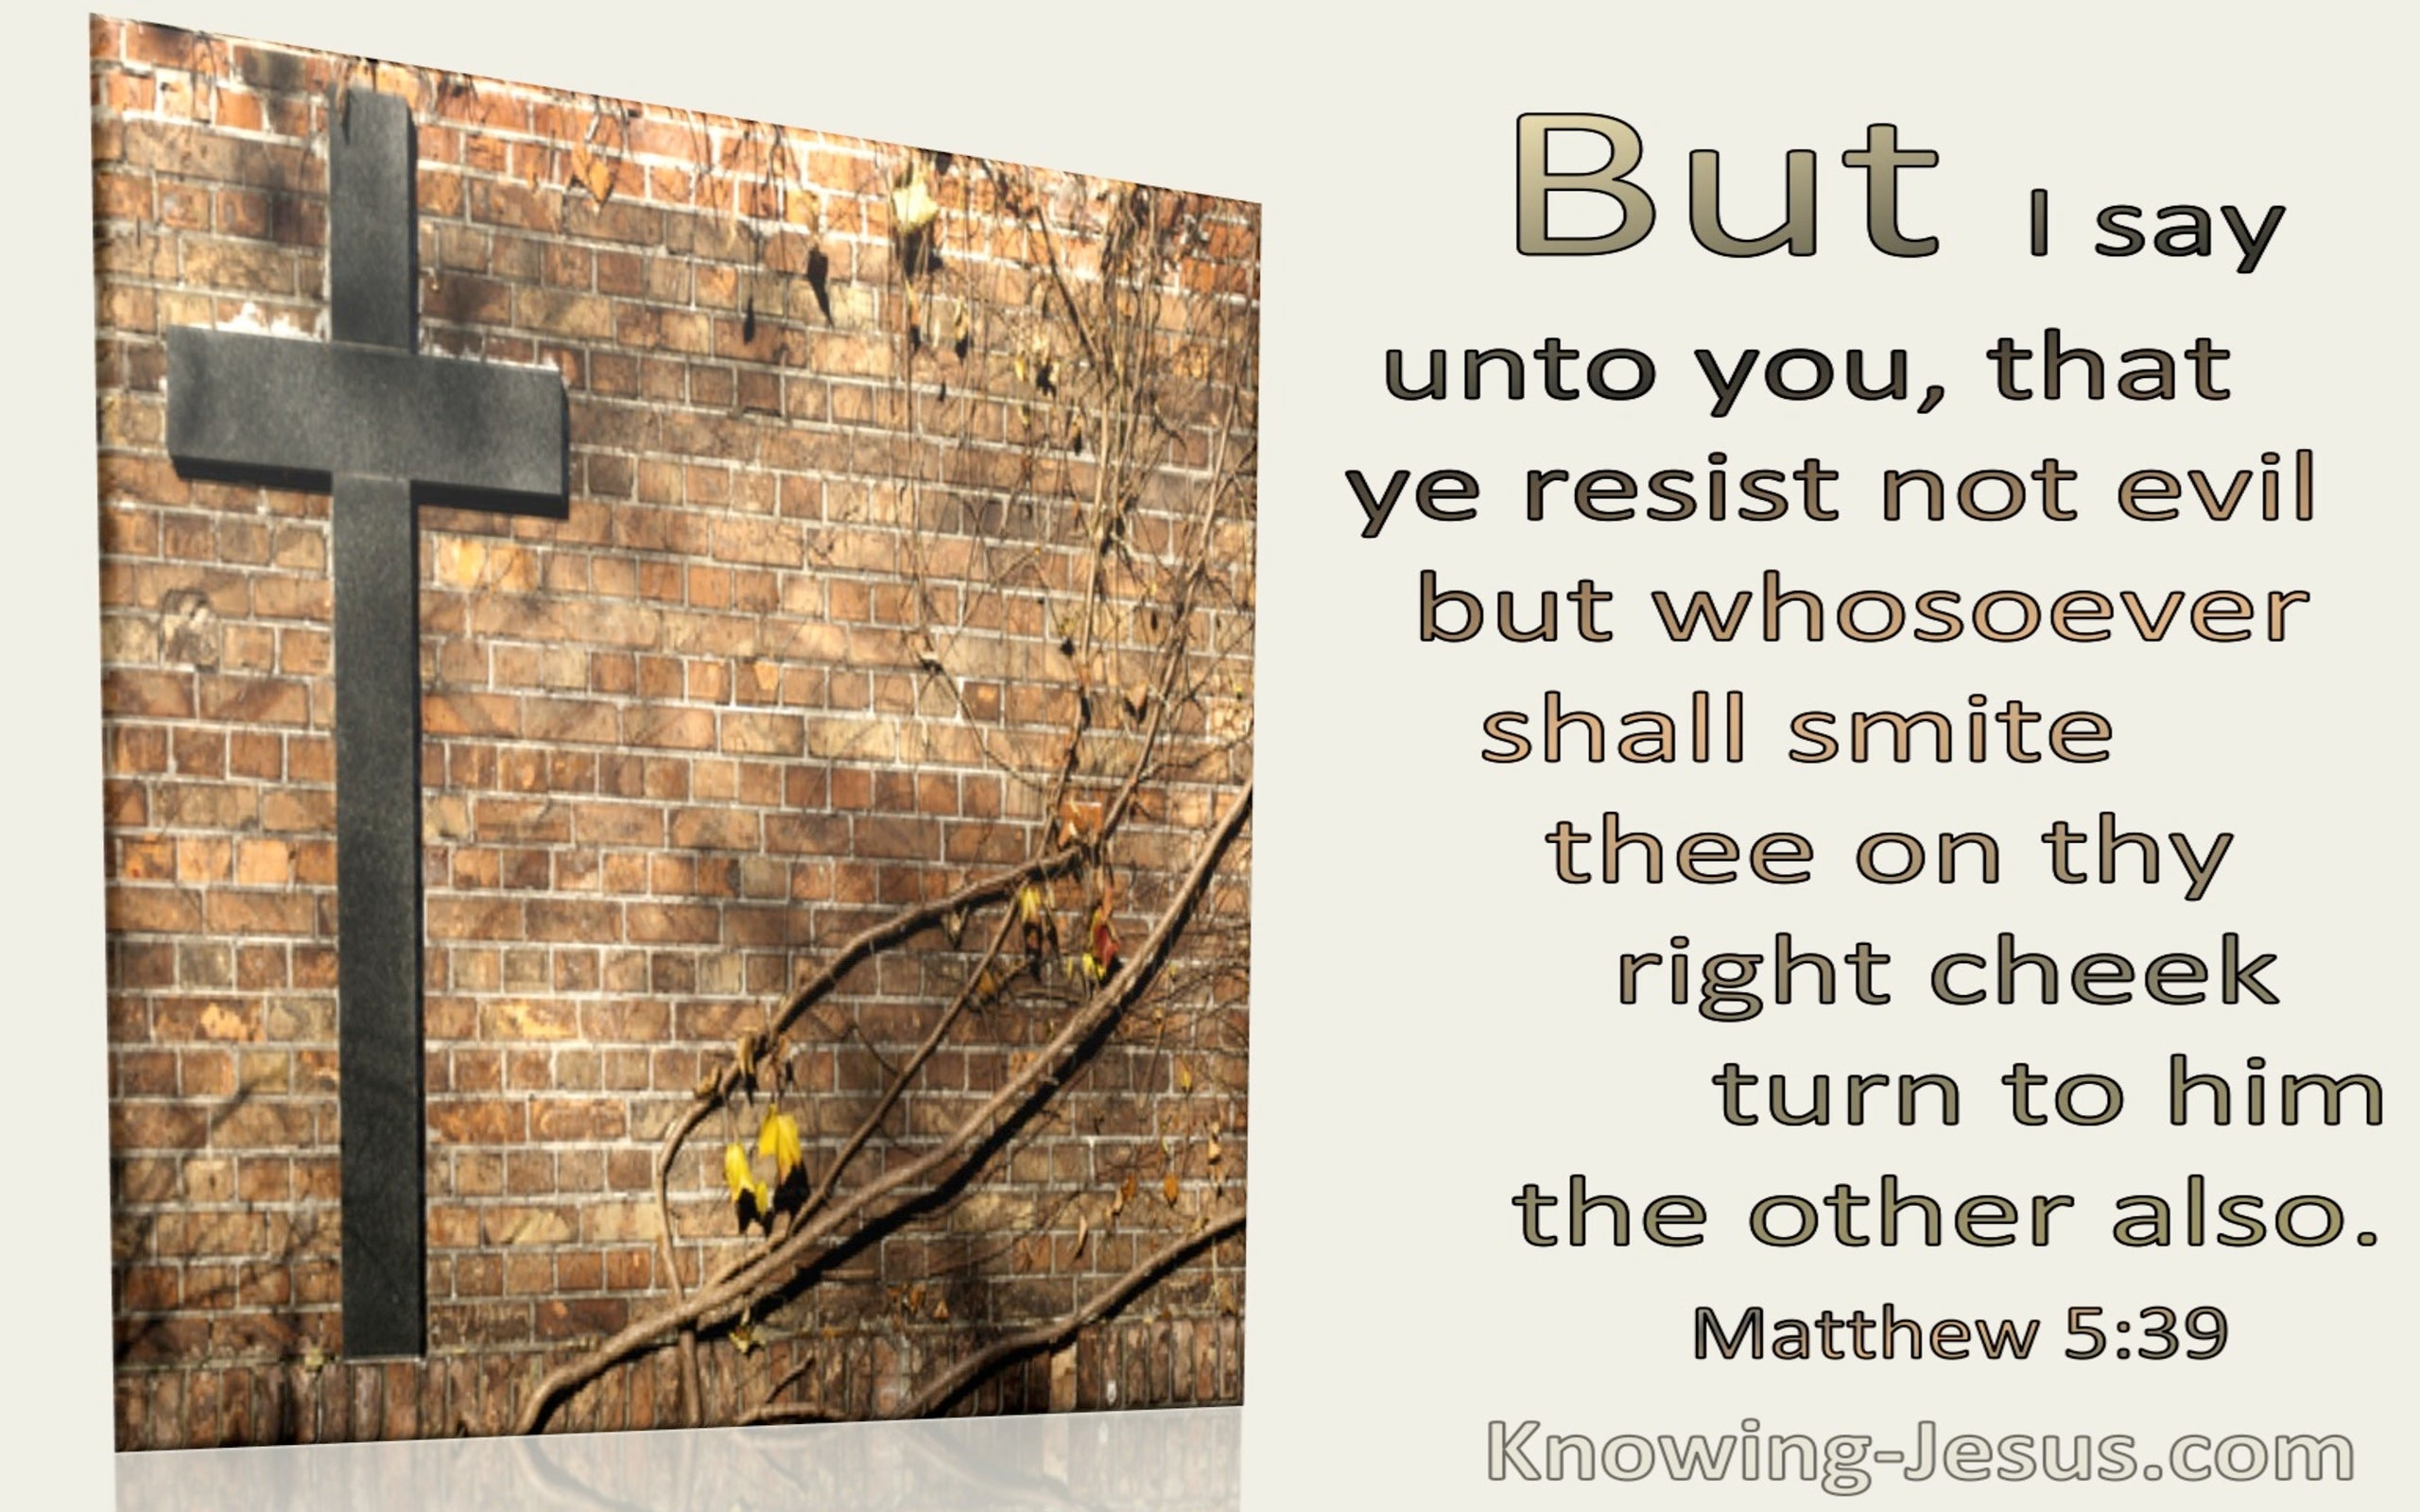 Matthew 5:39 Whosoever Smite Thee On The Right Cheek Turn To Him The Other Also (utmost)07:14